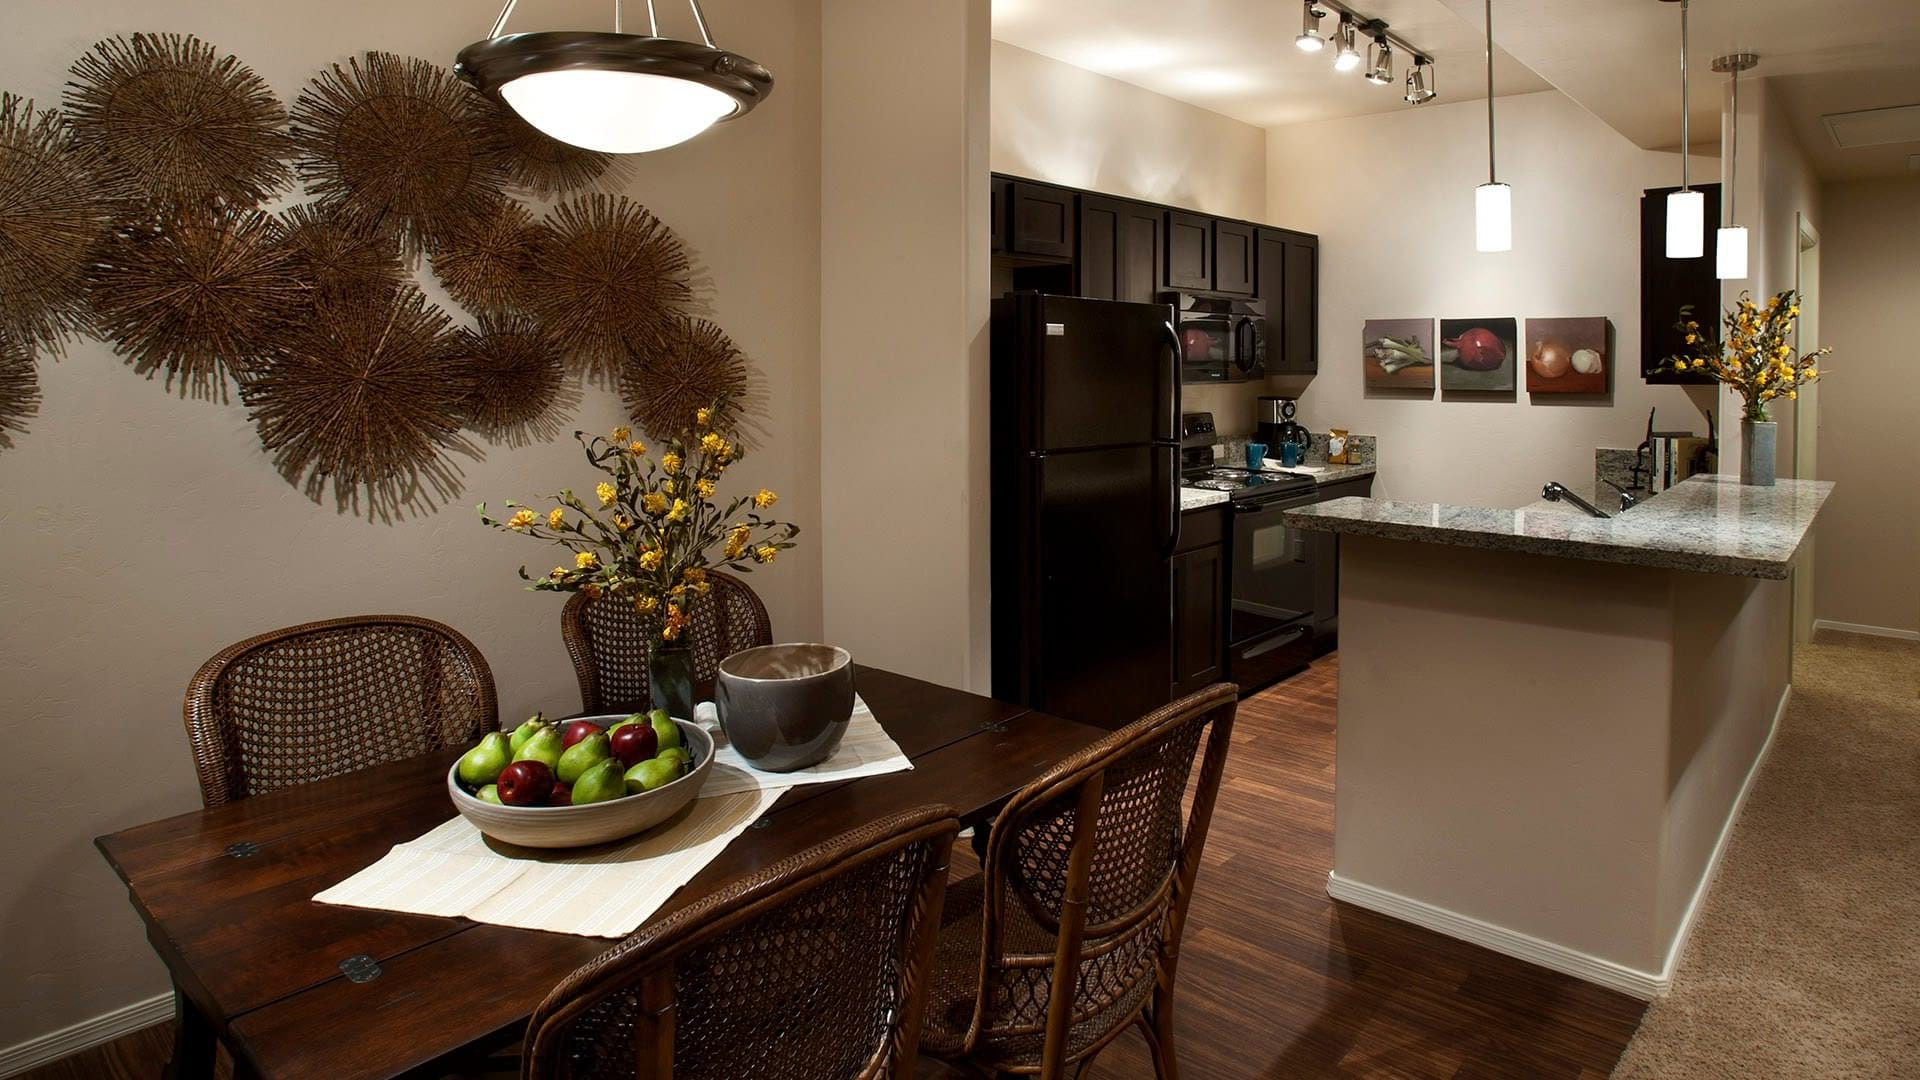 dining area with overhead light adjacent to kitchen